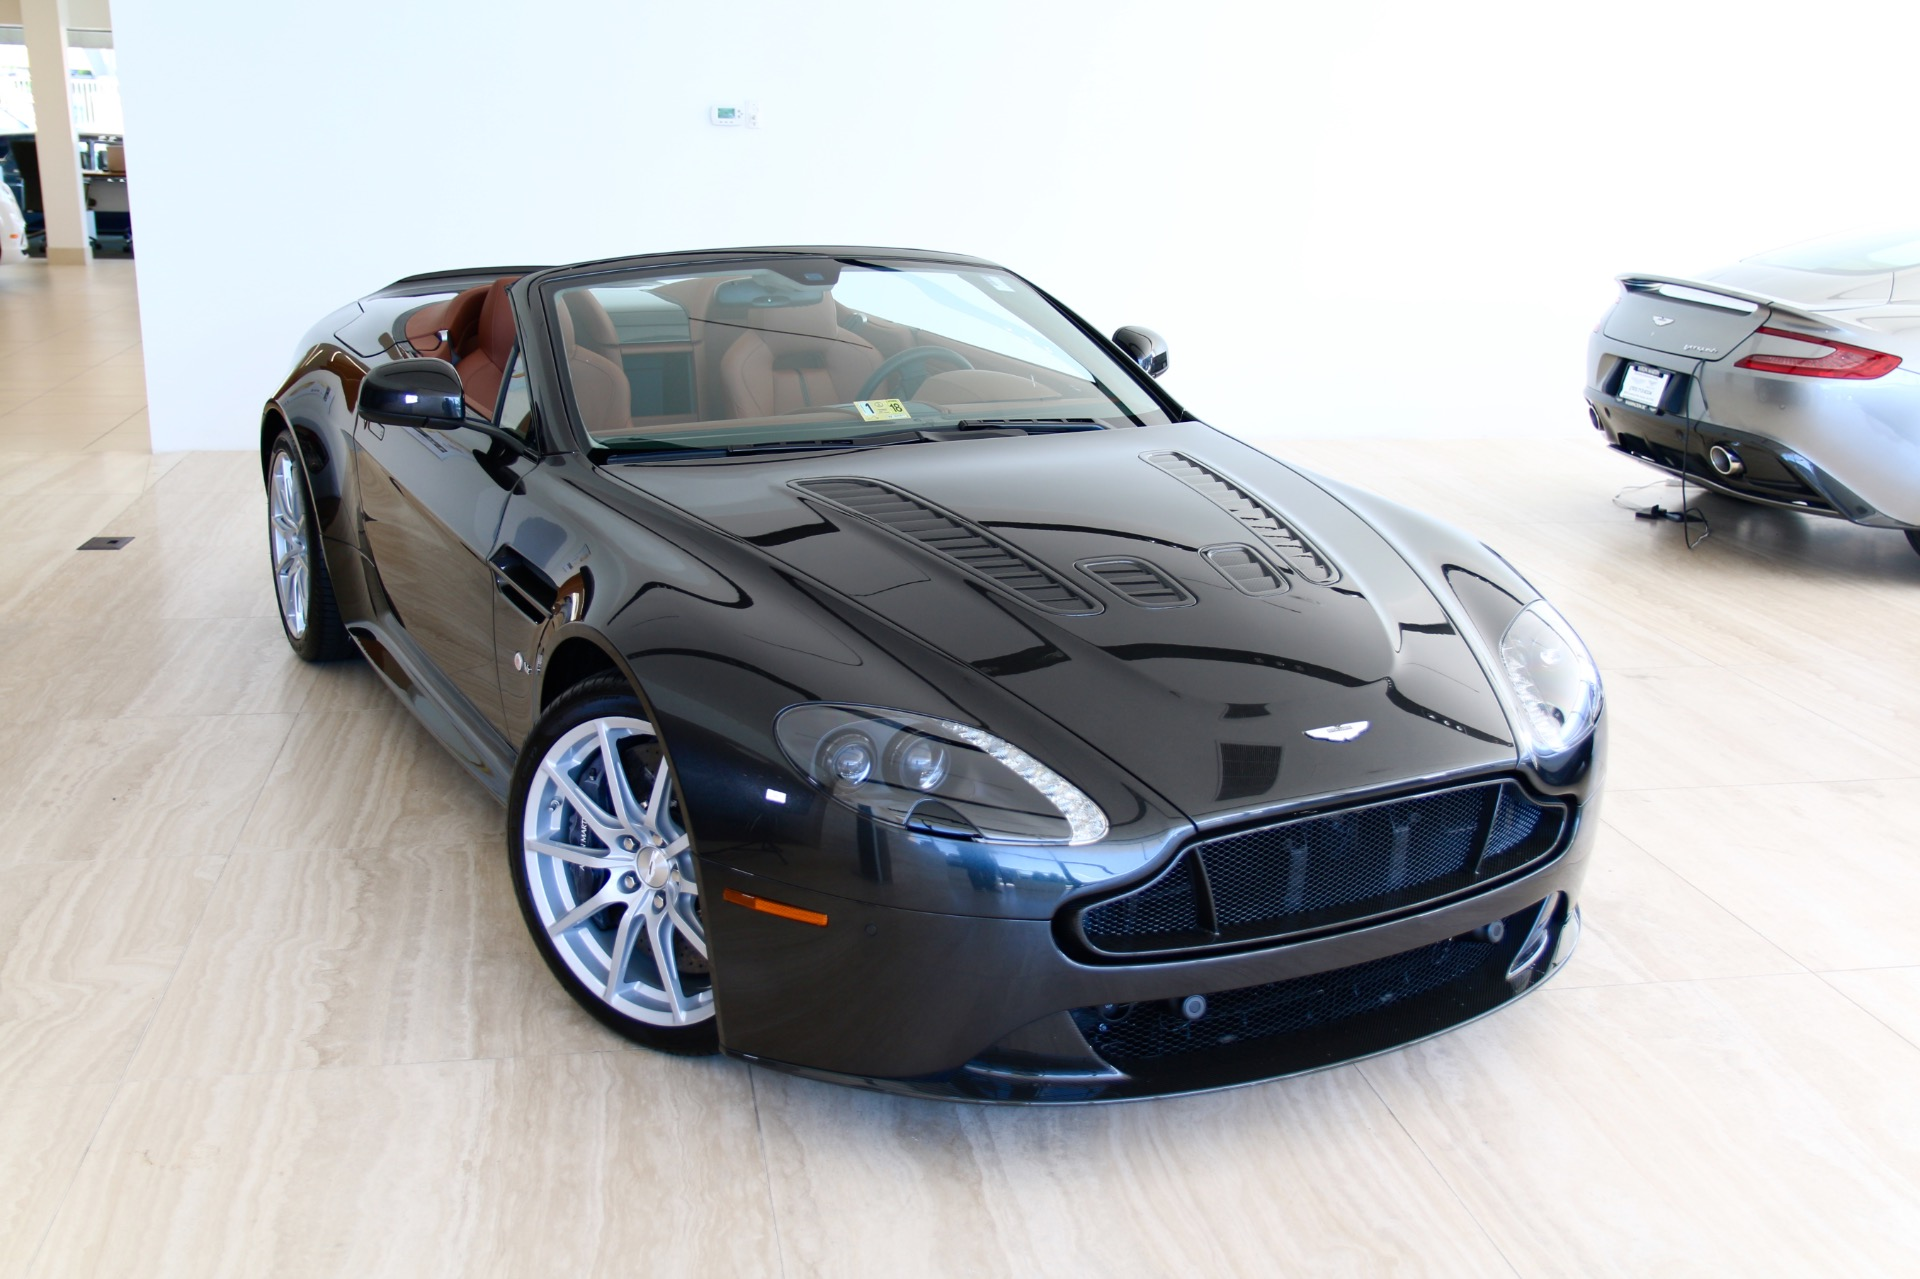 2017 aston martin v12 vantage s roadster stock 7ns22862 for sale near vienna va va aston. Black Bedroom Furniture Sets. Home Design Ideas